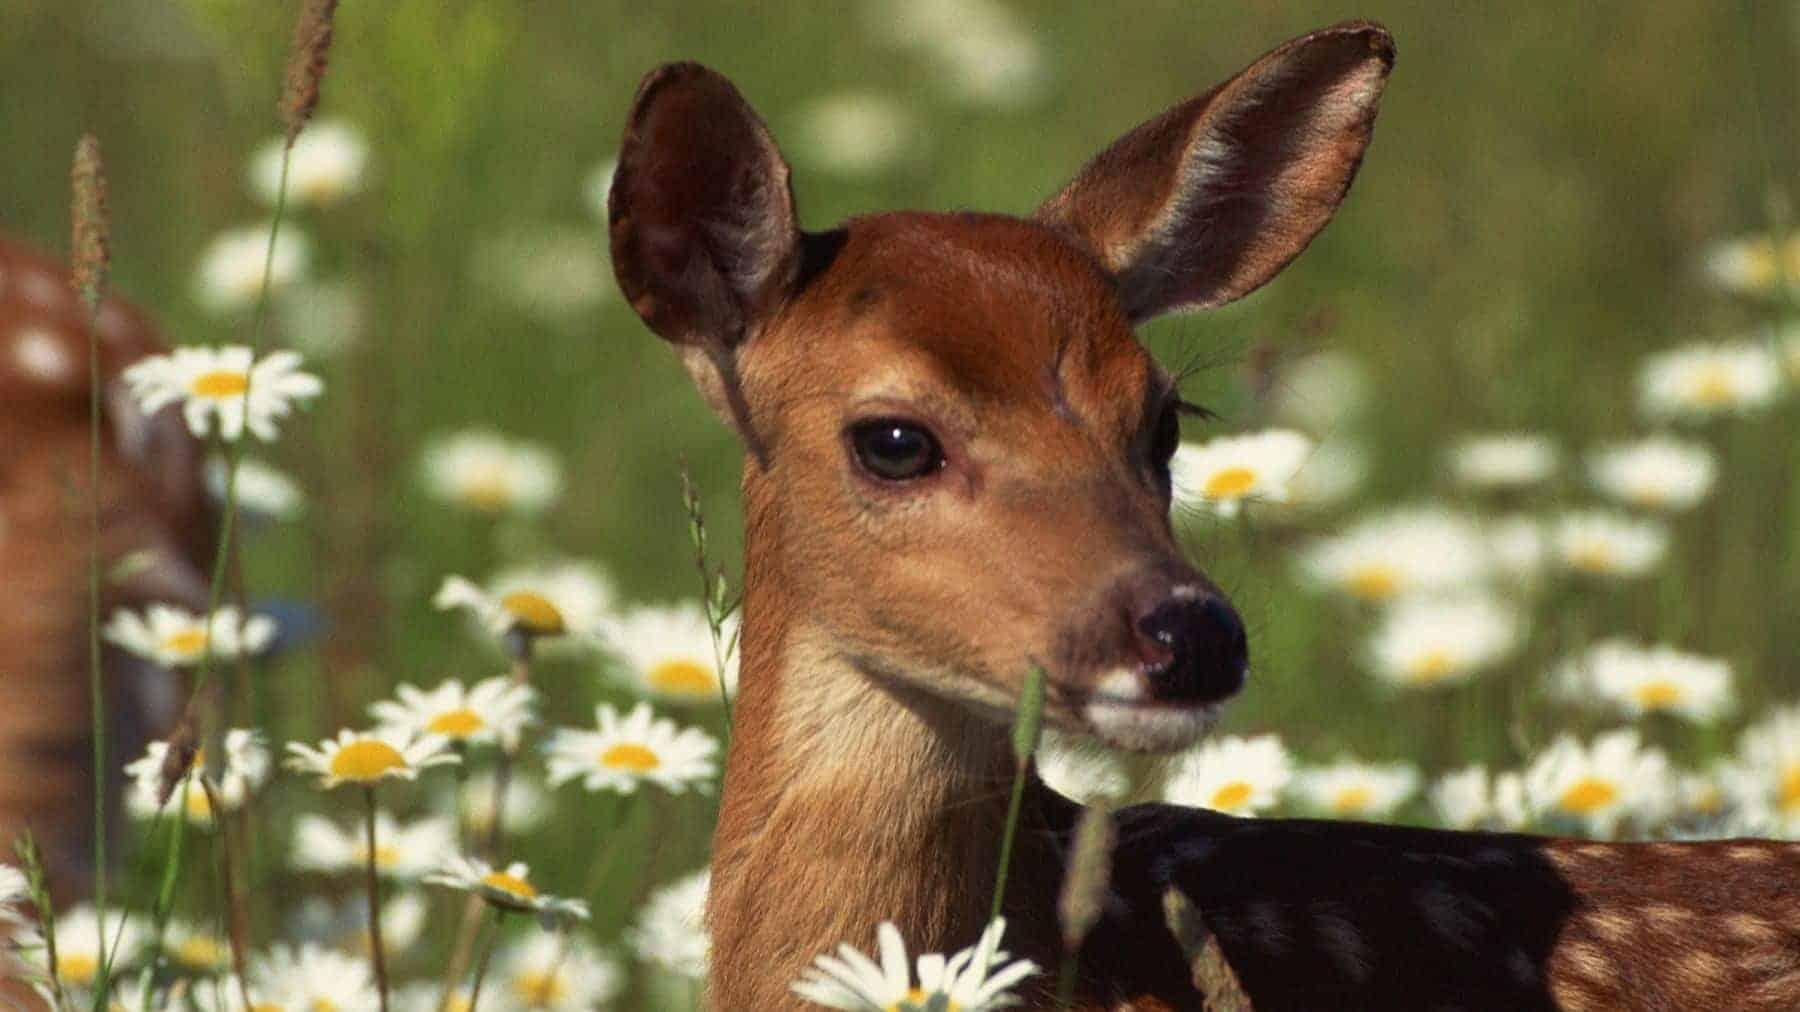 Young Deer surrounded by white daisies.